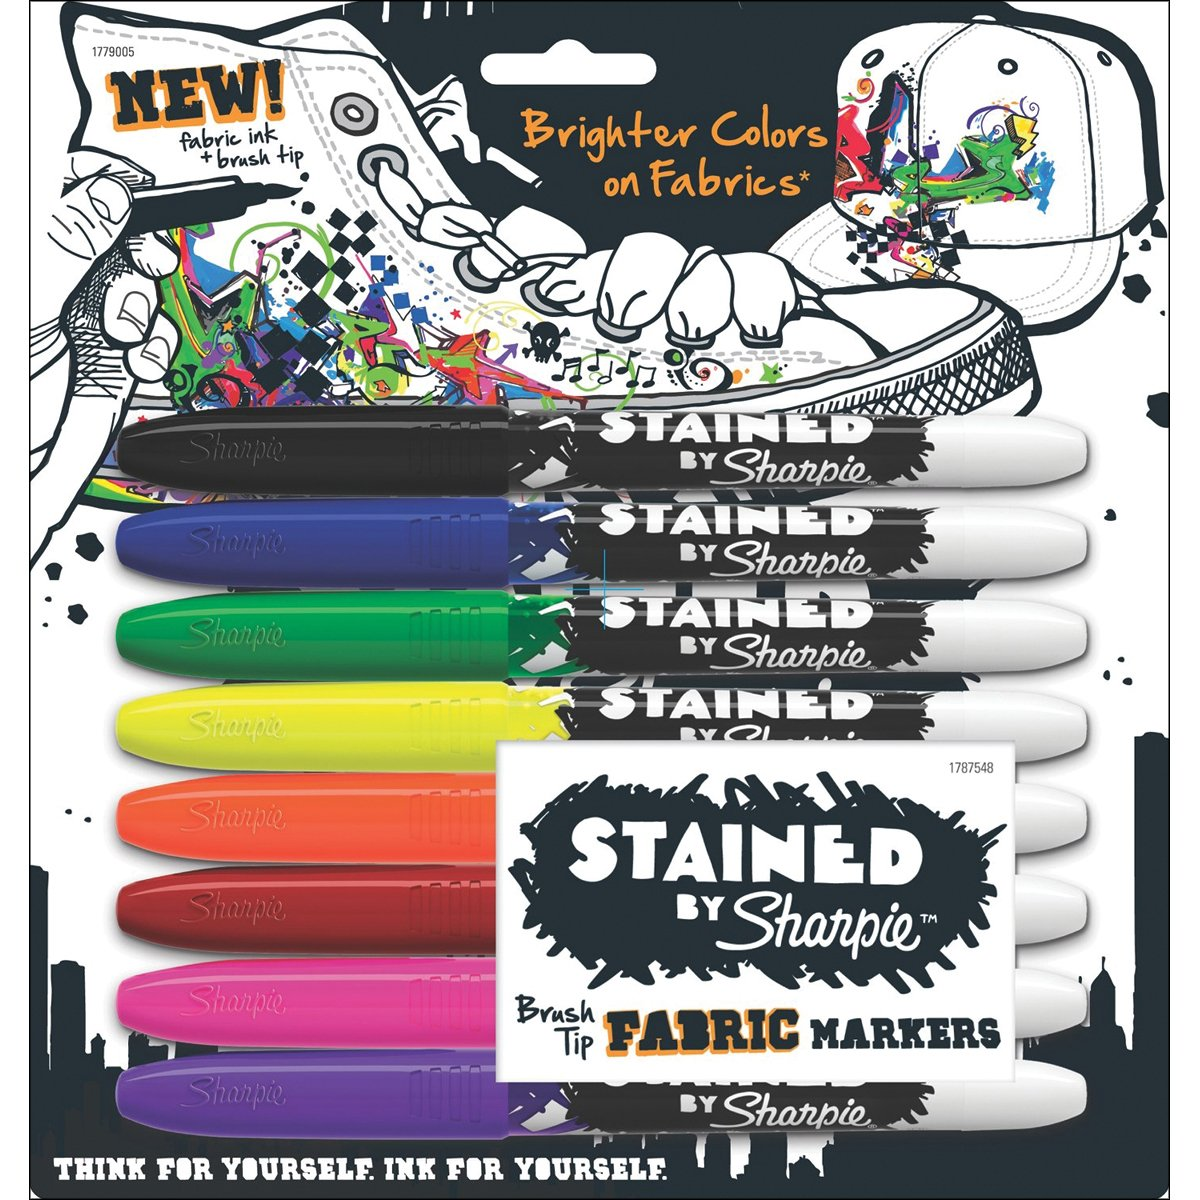 Sharpie 1779005 Stained Fabric Markers, Brush Tip, Assorted Colors, 8-Count by Sharpie